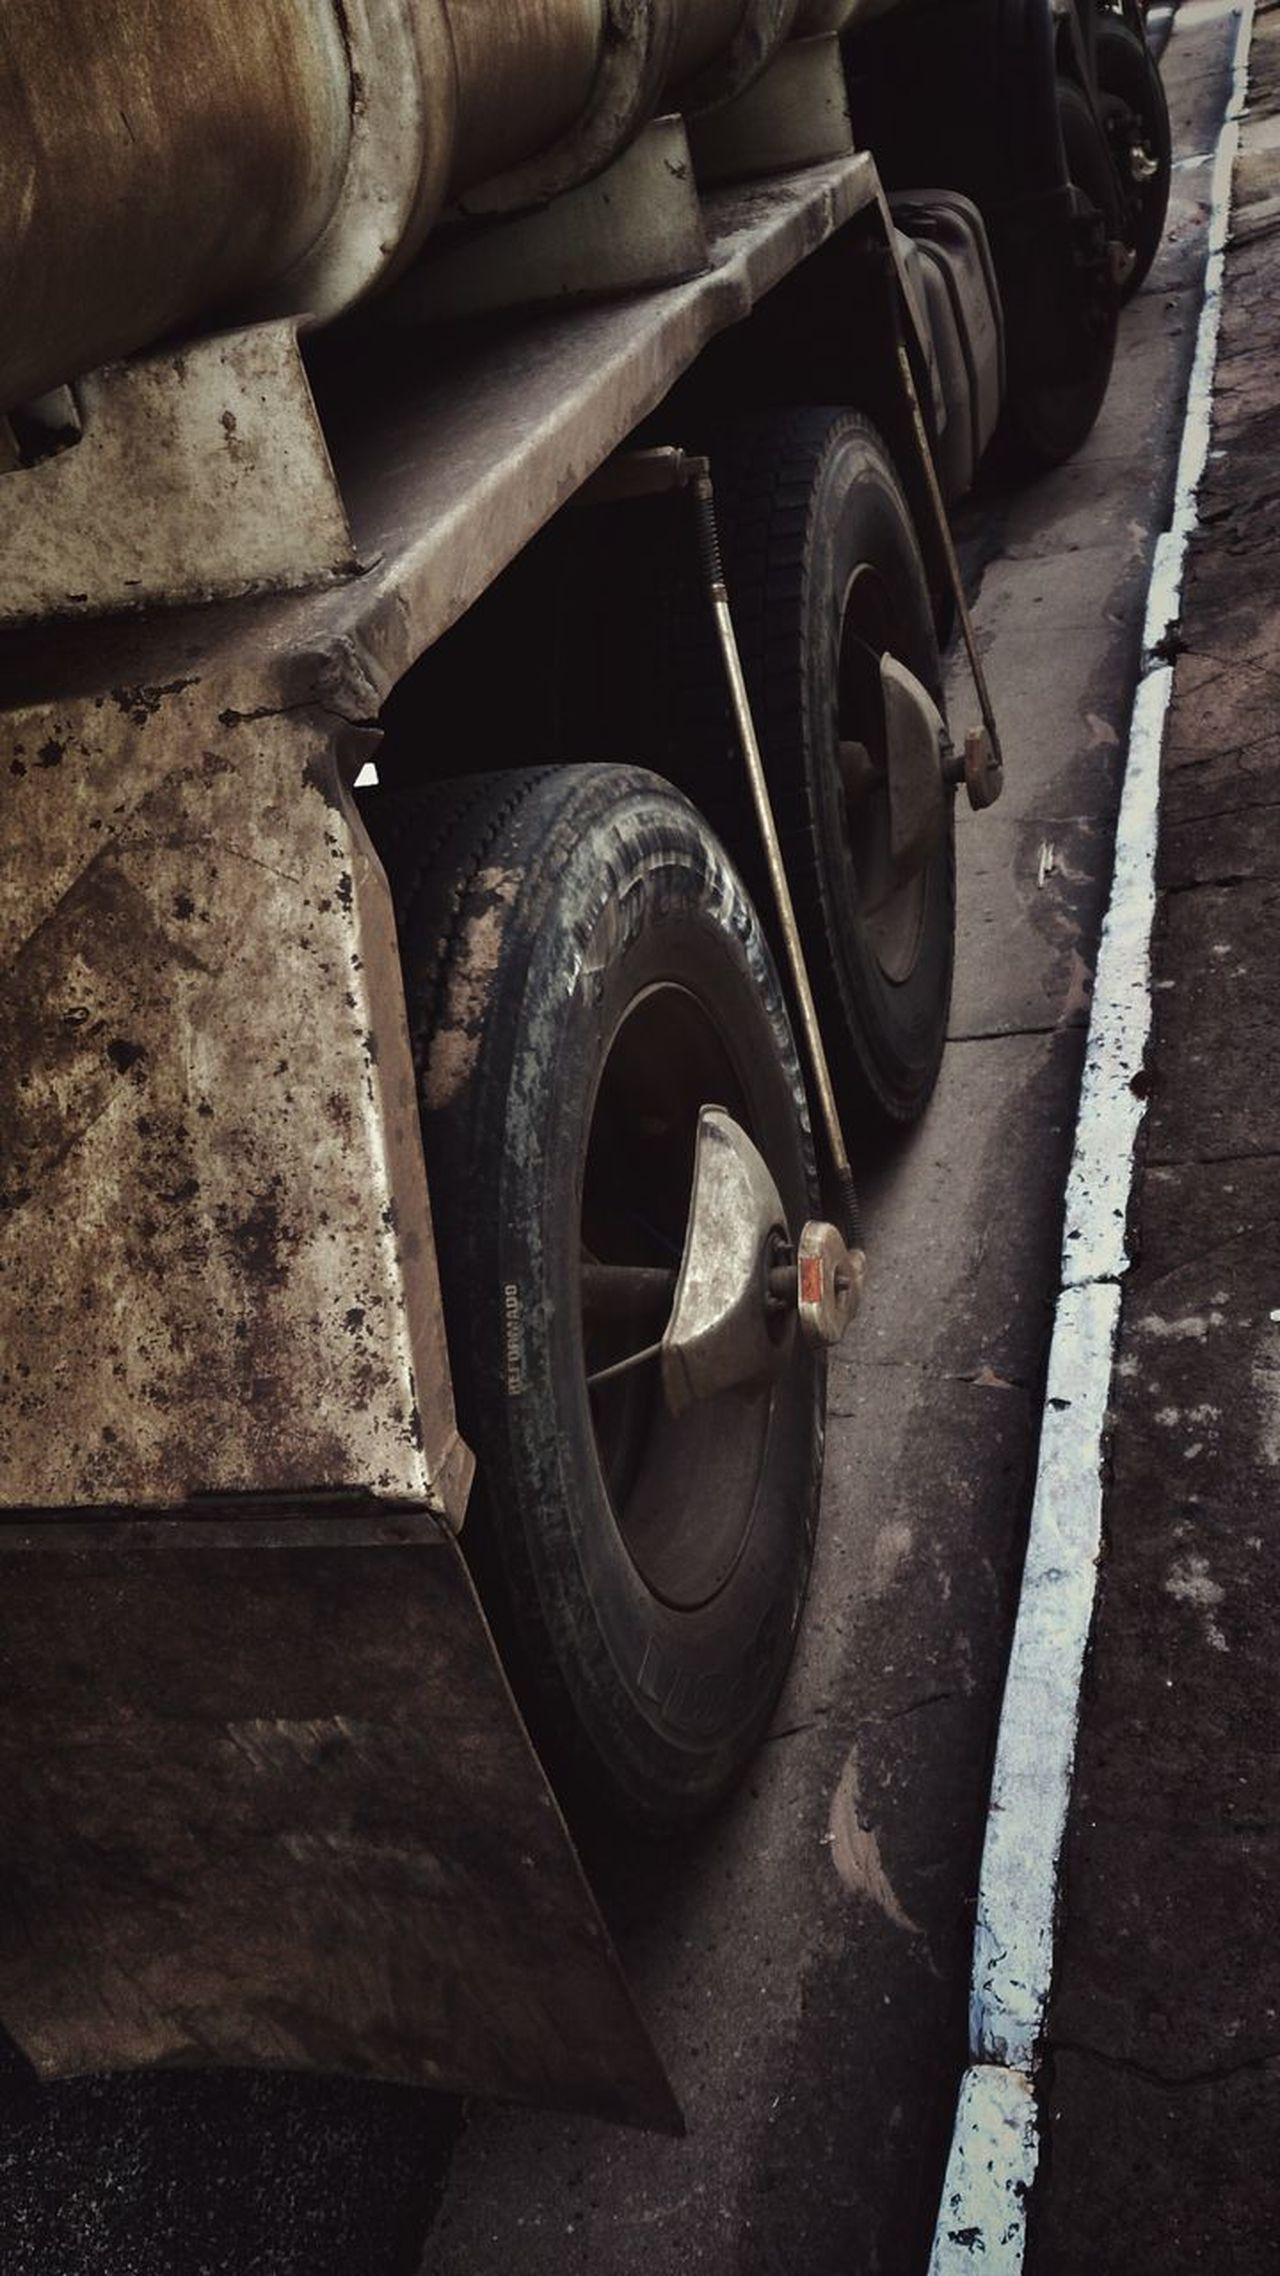 Tire Day Outdoors No People Simple Photography Wheels Truck Trucks And Wheels Trucks Old Metals Vehicle Part Vehicles Taking Photos EyeEm Gallery